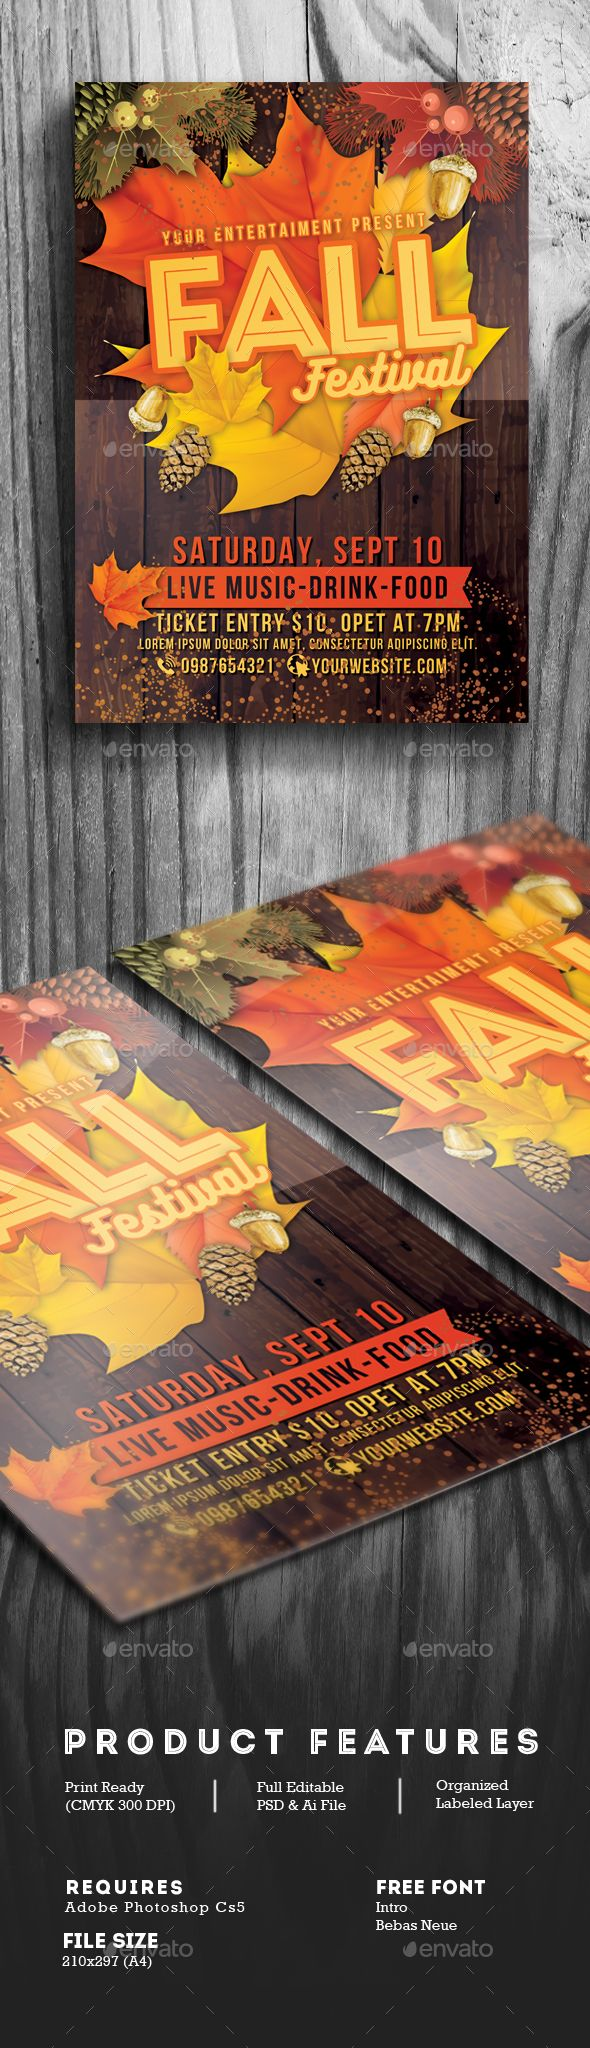 Fall Festival Flyer  Flyer Template Template And Font Logo